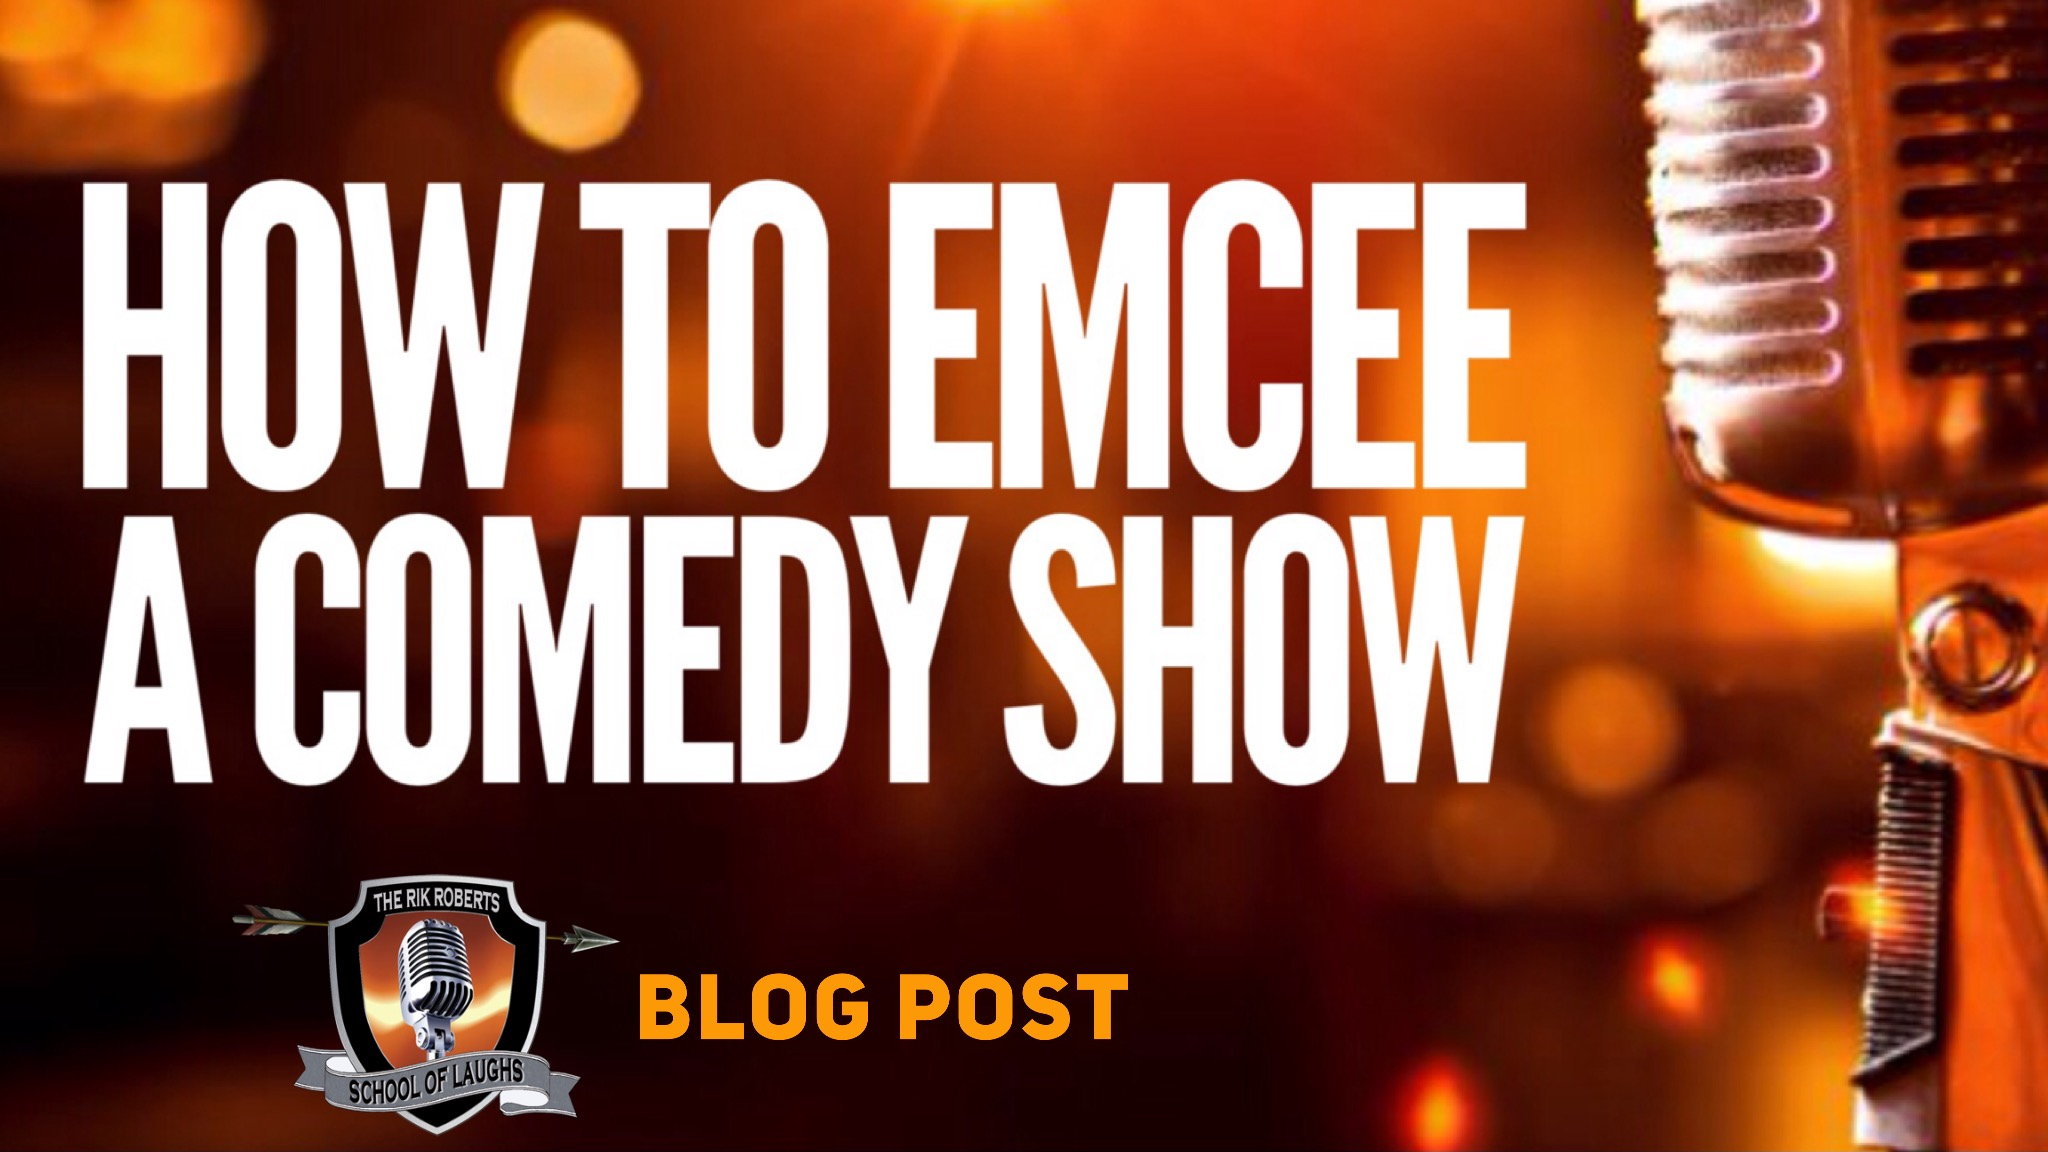 HOW TO EMCEE A COMEDY SHOW